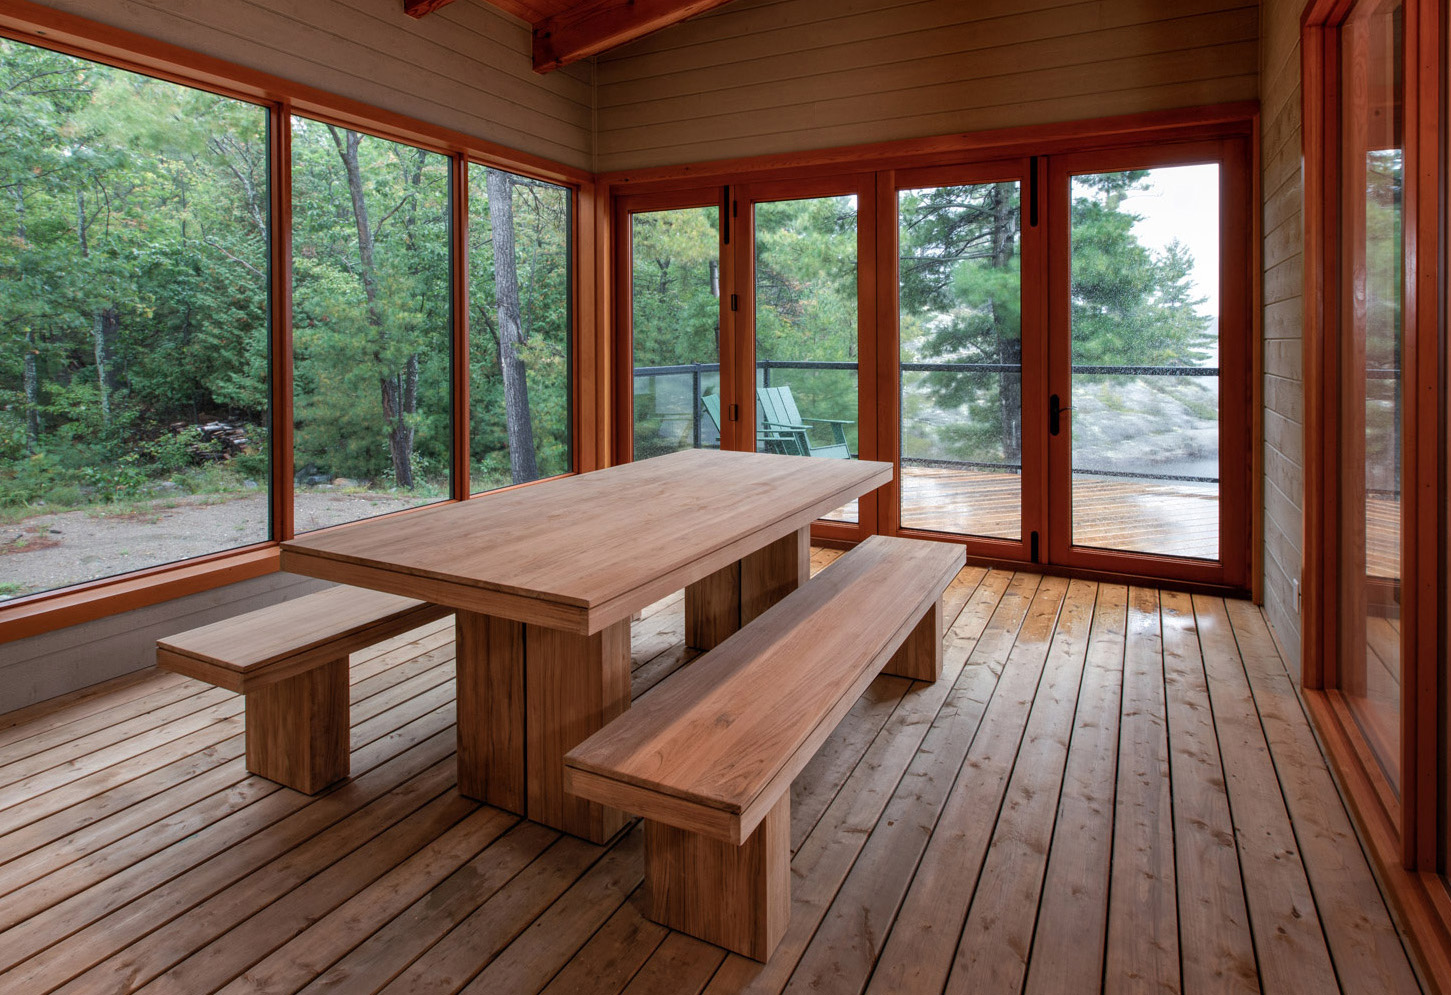 Exterior sunroom-with dining room table. Large modern table with bench seating, wrap around Douglas Fir windows and Kebony decking